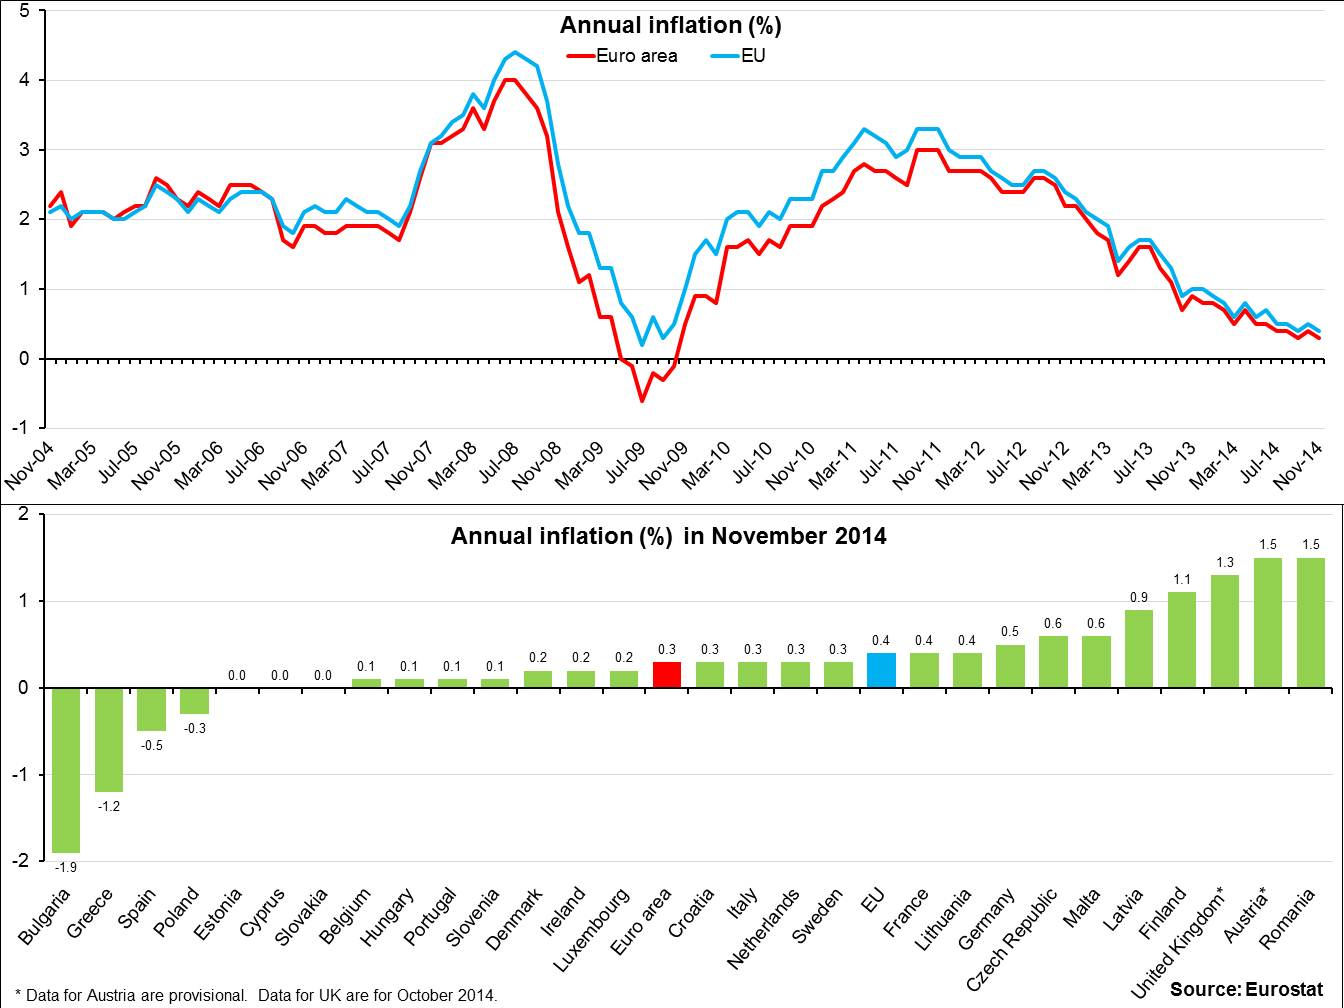 Euro area annual inflation down to 0.3% in November 2014 #Eurostat http://t.co/7lHSGYXf0r